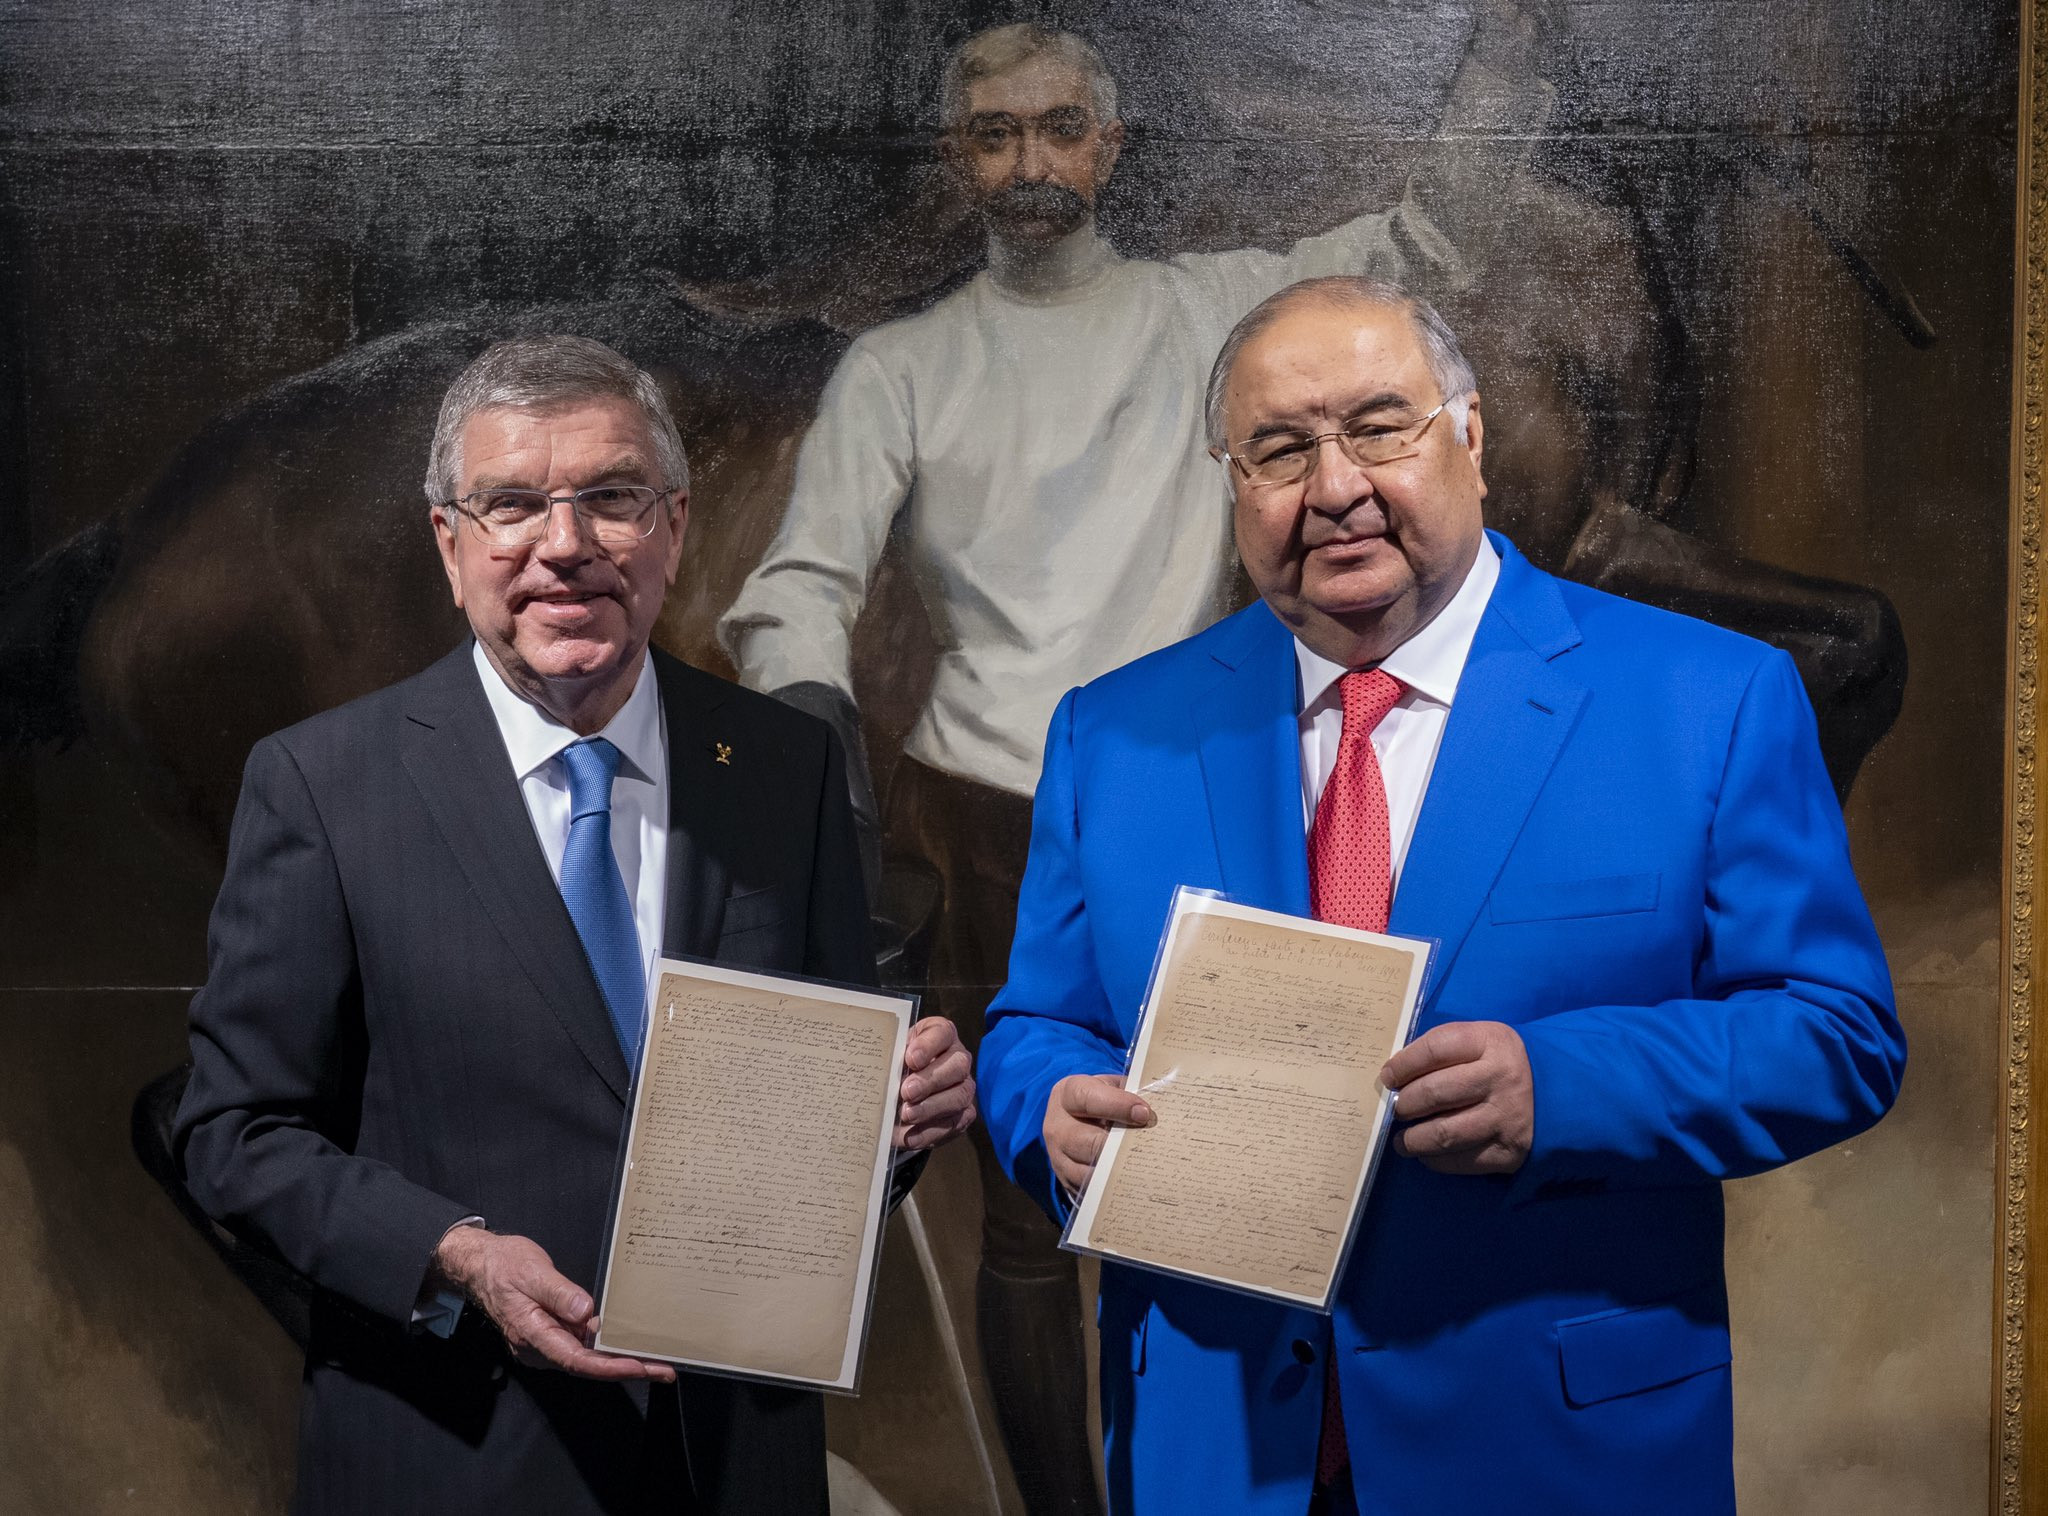 Alisher Usmanov (right) and IOC president Thomas Bach (left) with copies of the historic manuscript recently donated by Usmanov ©IOC